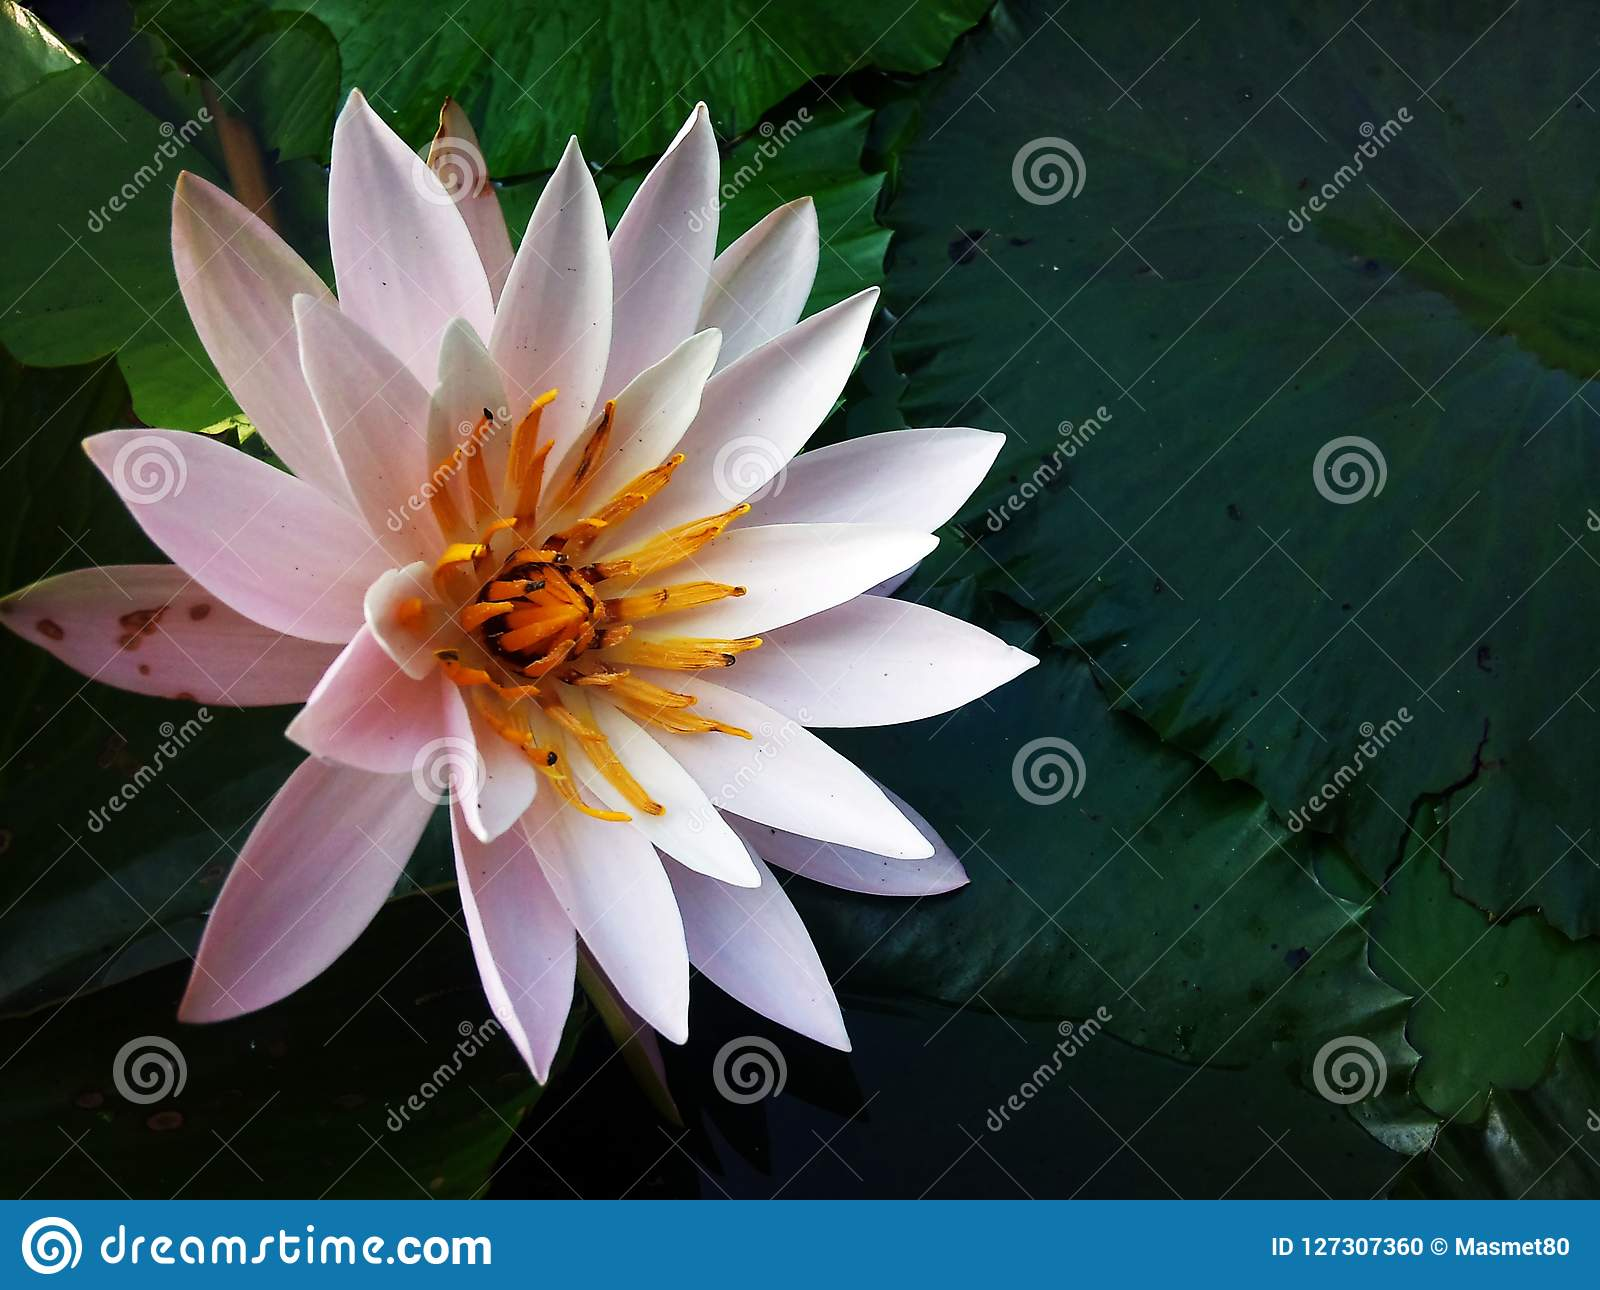 The Most Beautiful Lotus Flower Stock Photo Image Of Most